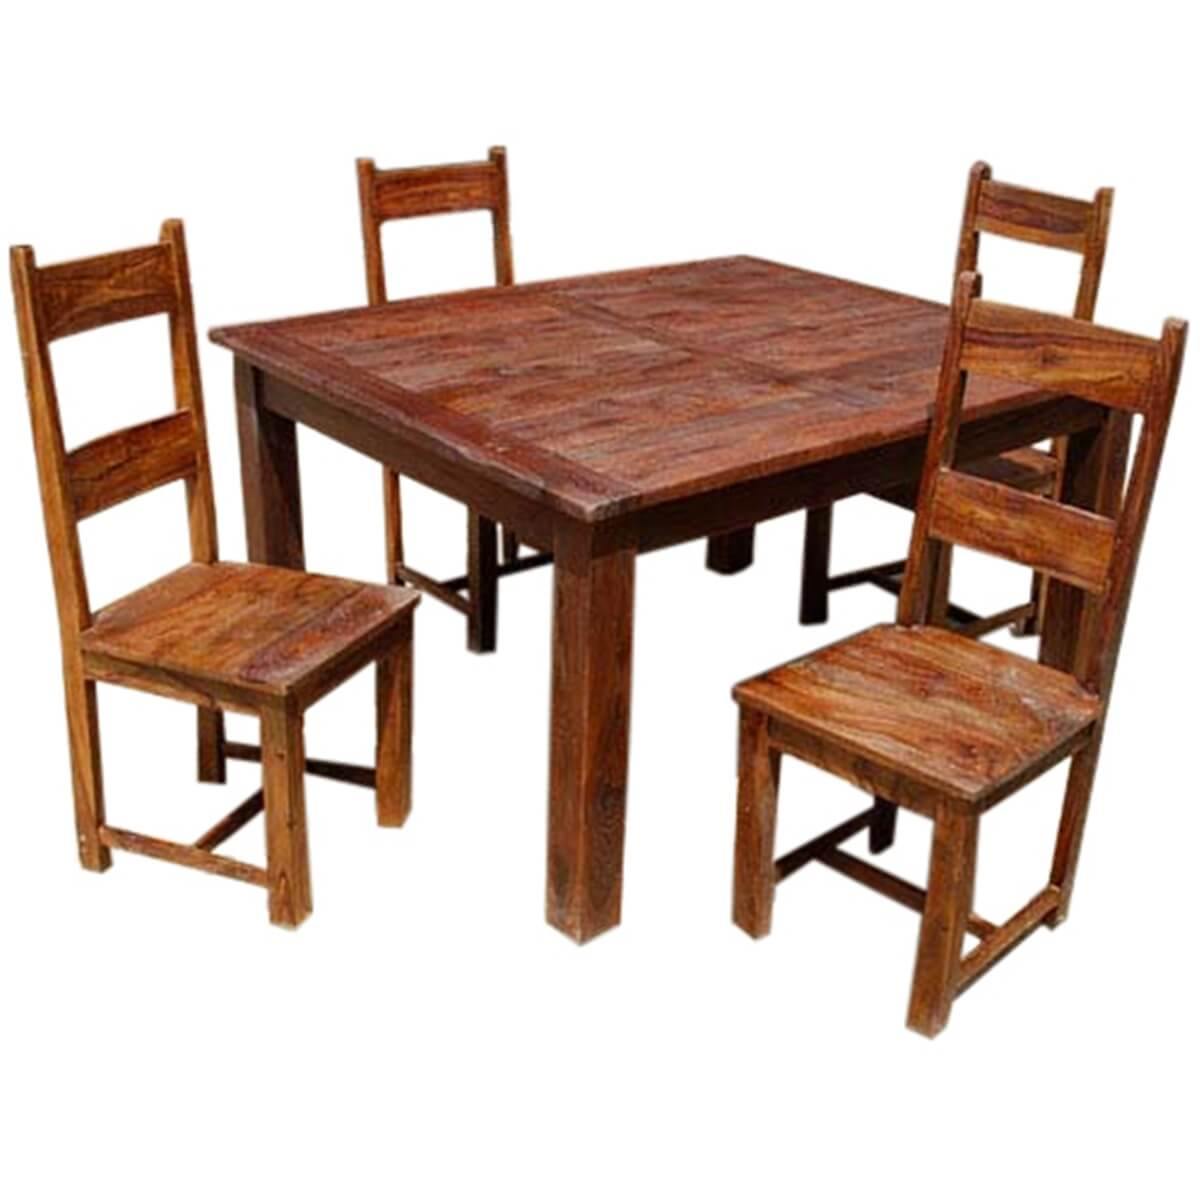 Rustic solid wood appalachian dining room table chair set for Rustic dining room sets